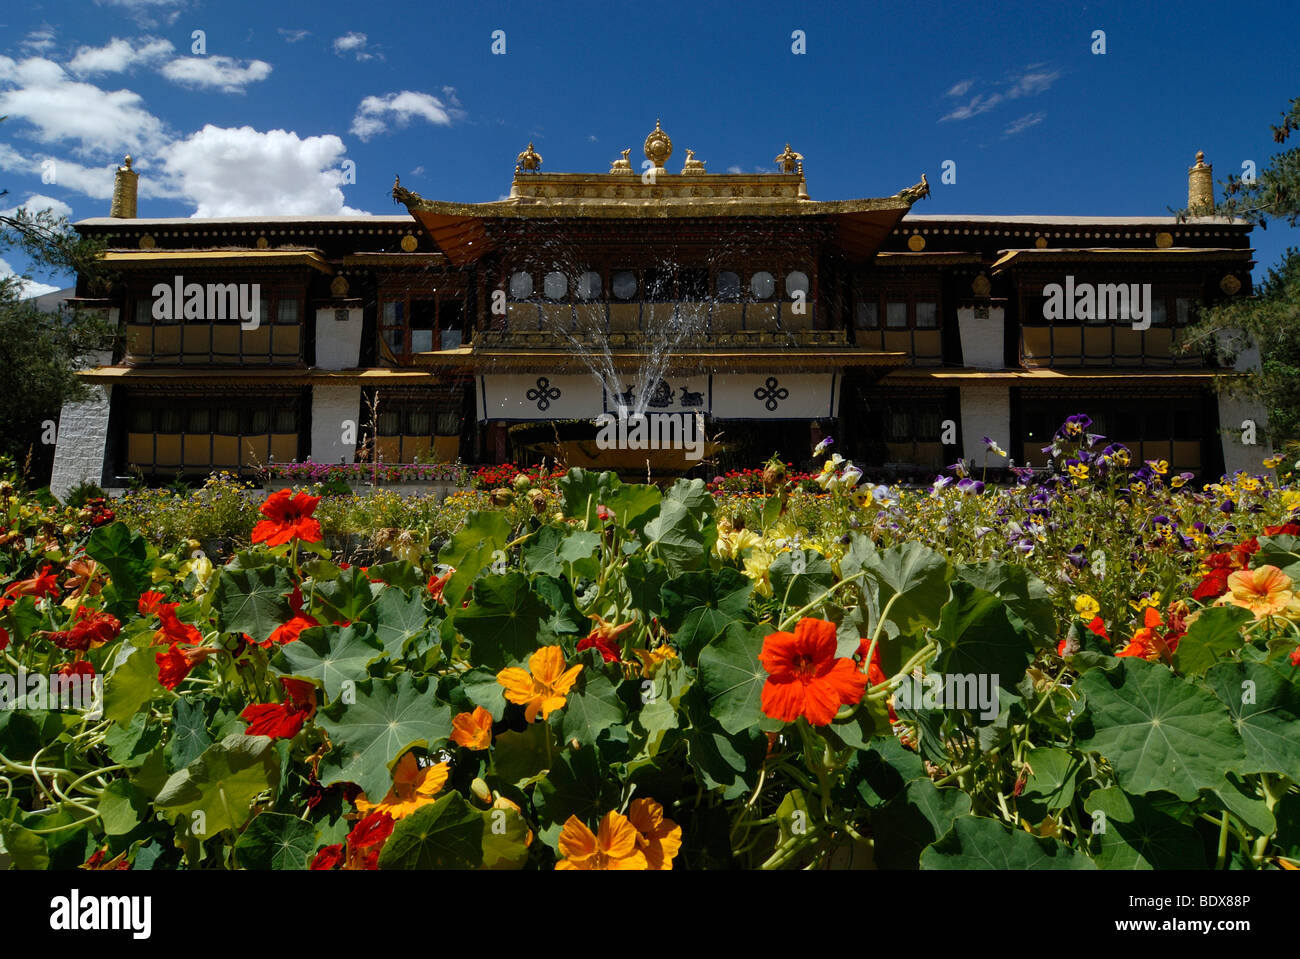 Summer palace of the Dalai Llama in Norbulingka, jewel garden with flowers and water fountain, Lhasa, Tibet, China, - Stock Image